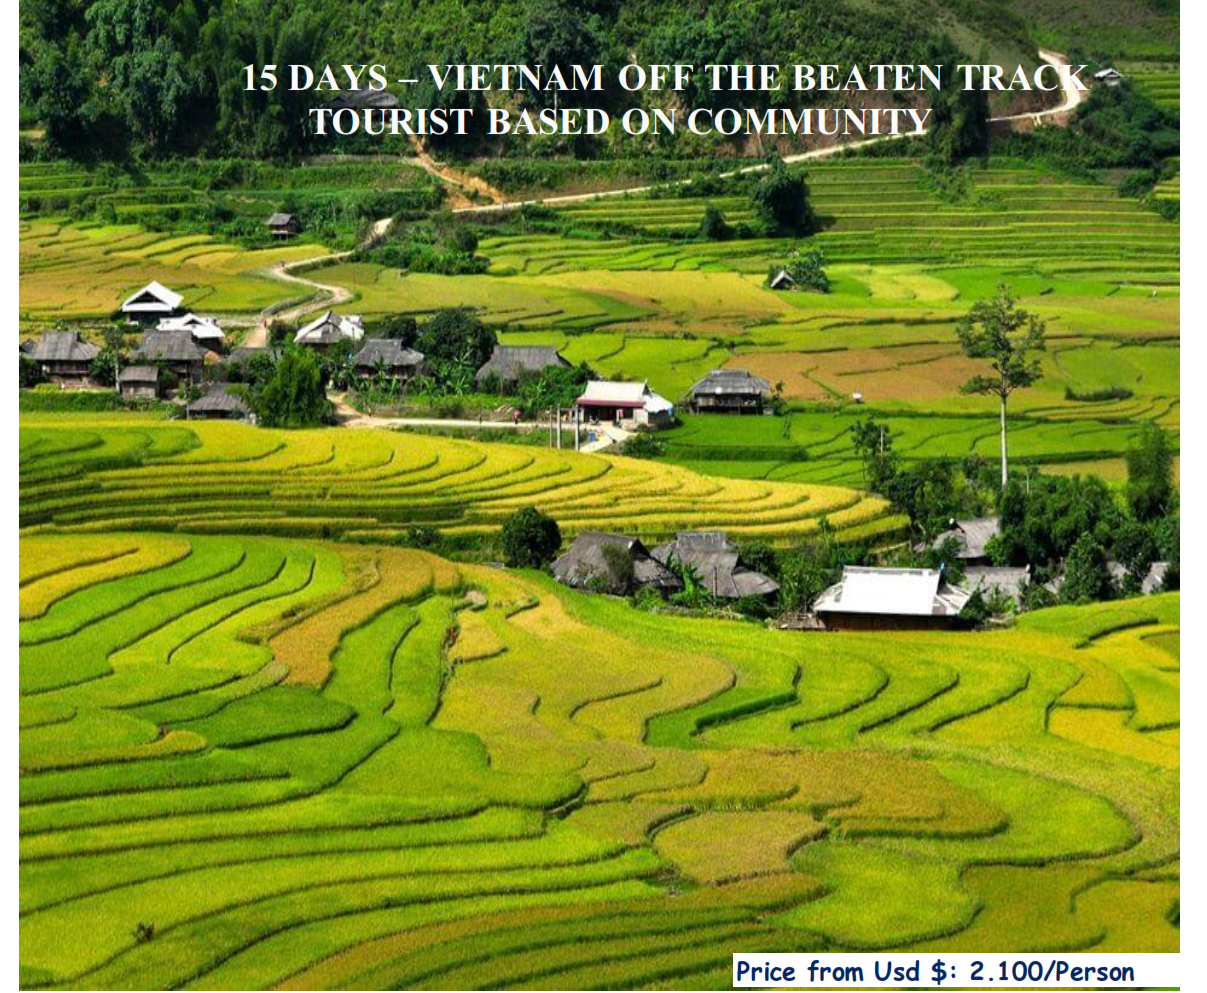 15 DAYS – VIETNAM OFF THE BEATEN TRACK TOURIST BASED ON COMMUNITY